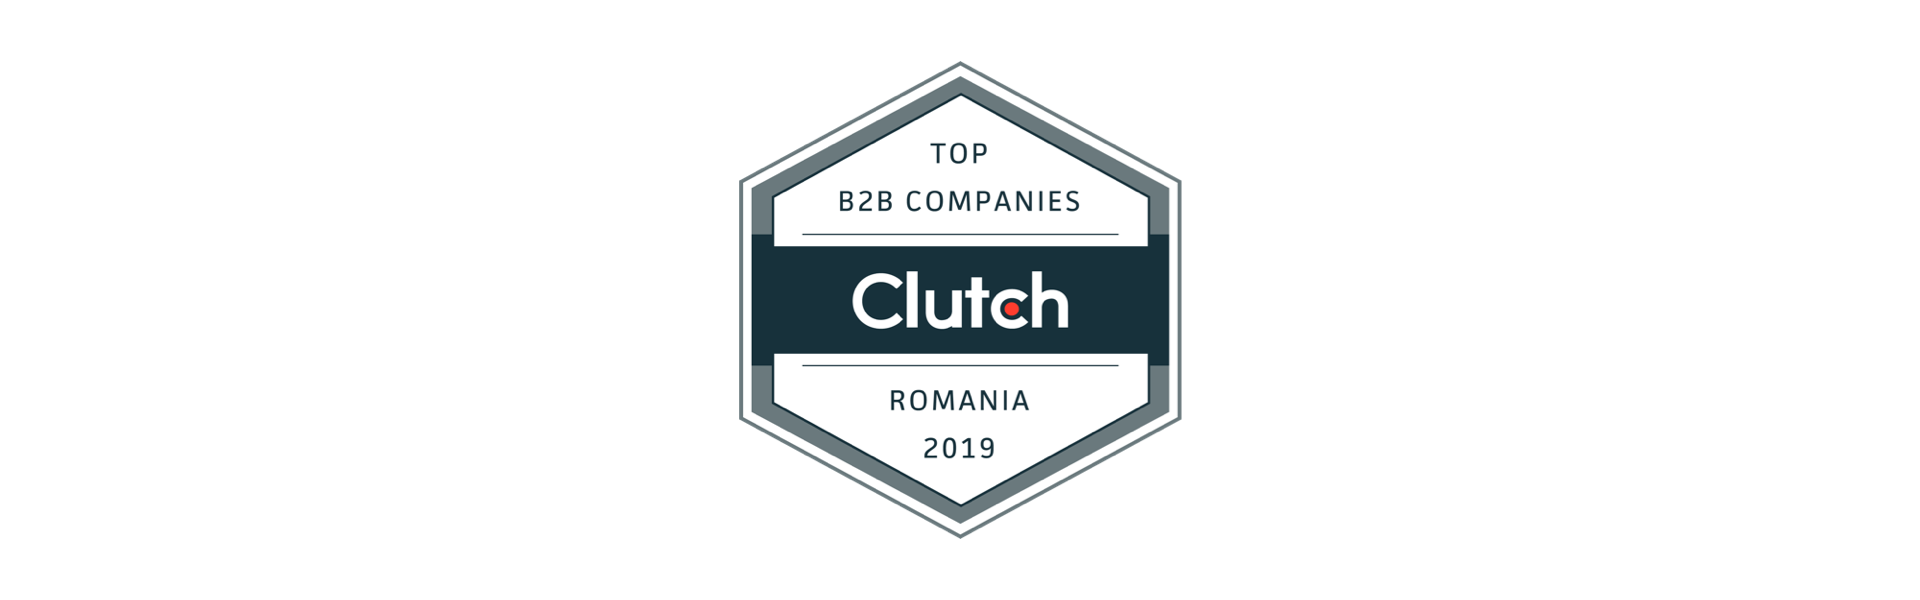 top developer in romania by clutch